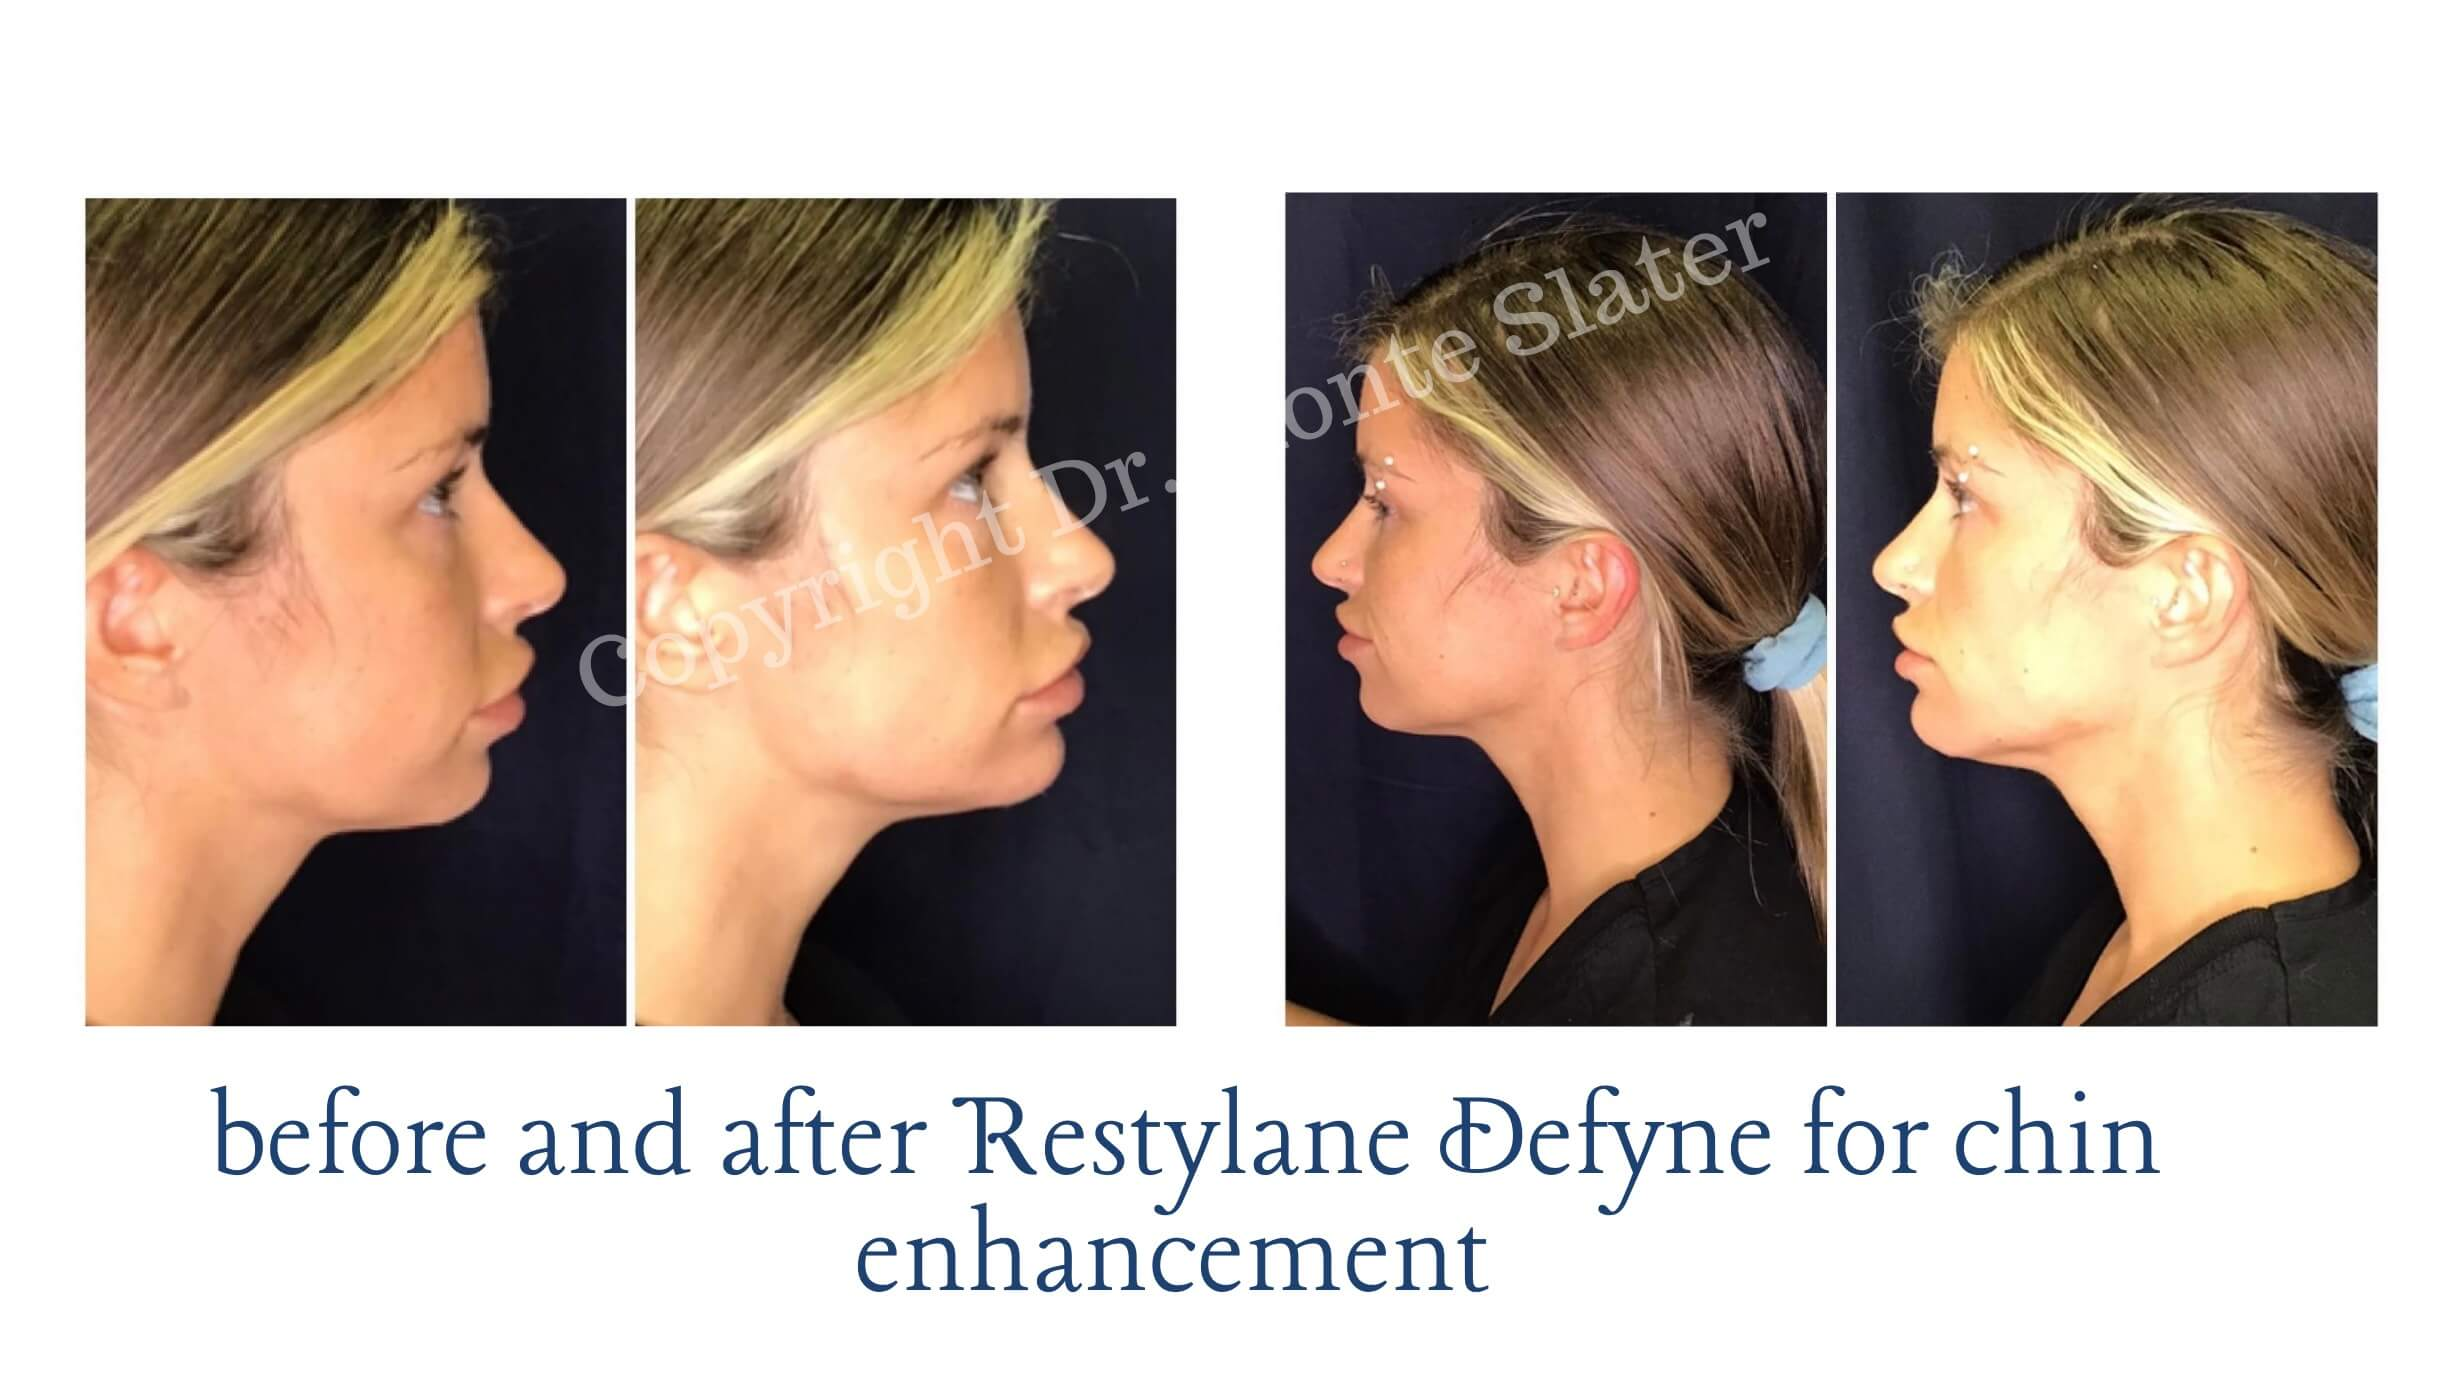 Before and After Restylane Defyne with Dr. Monte Slater